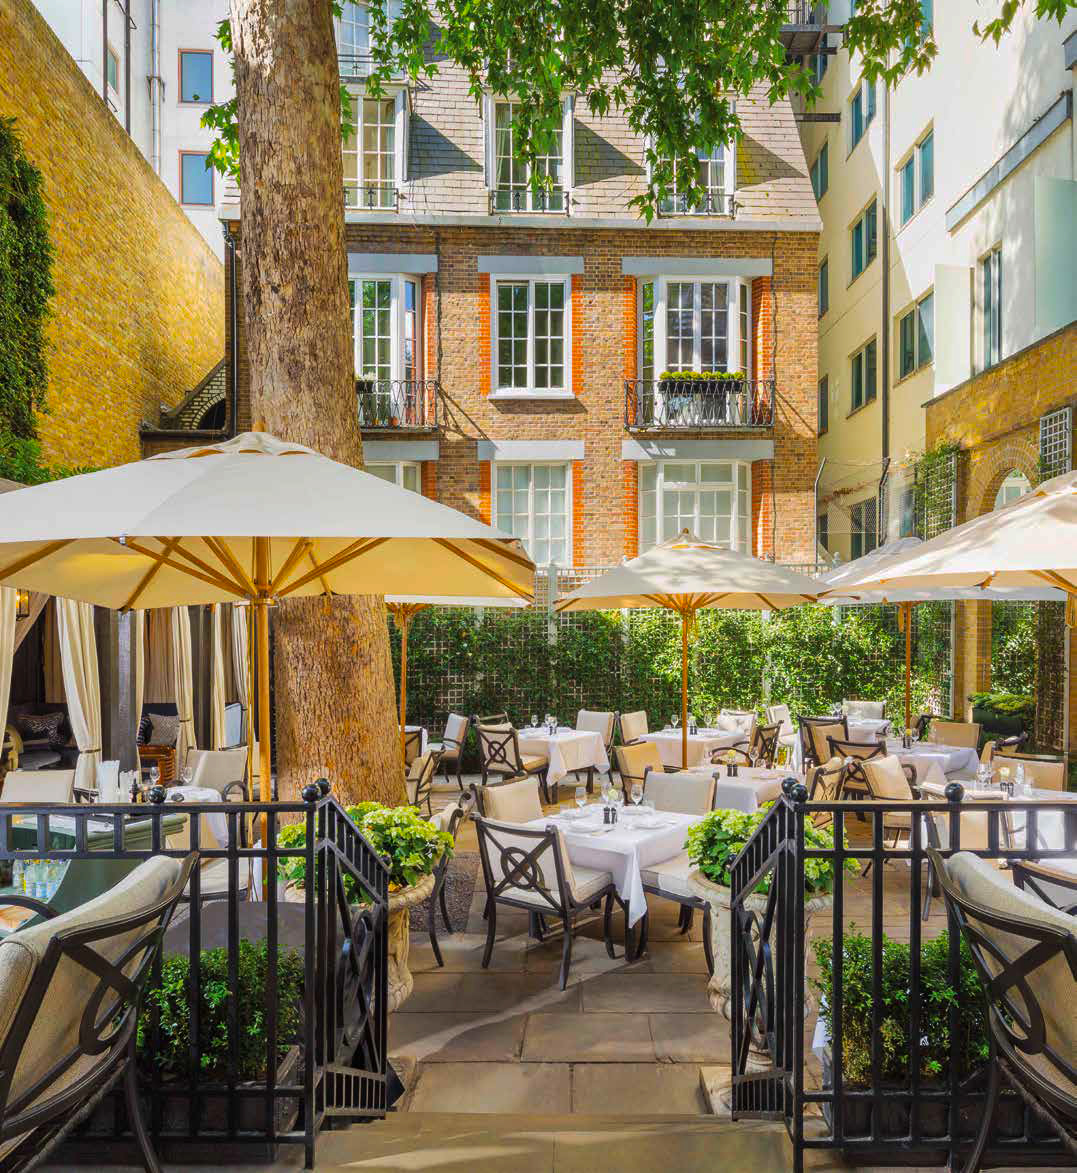 A Memorable Stay at The Arts Club Hotel, Mayfair 5